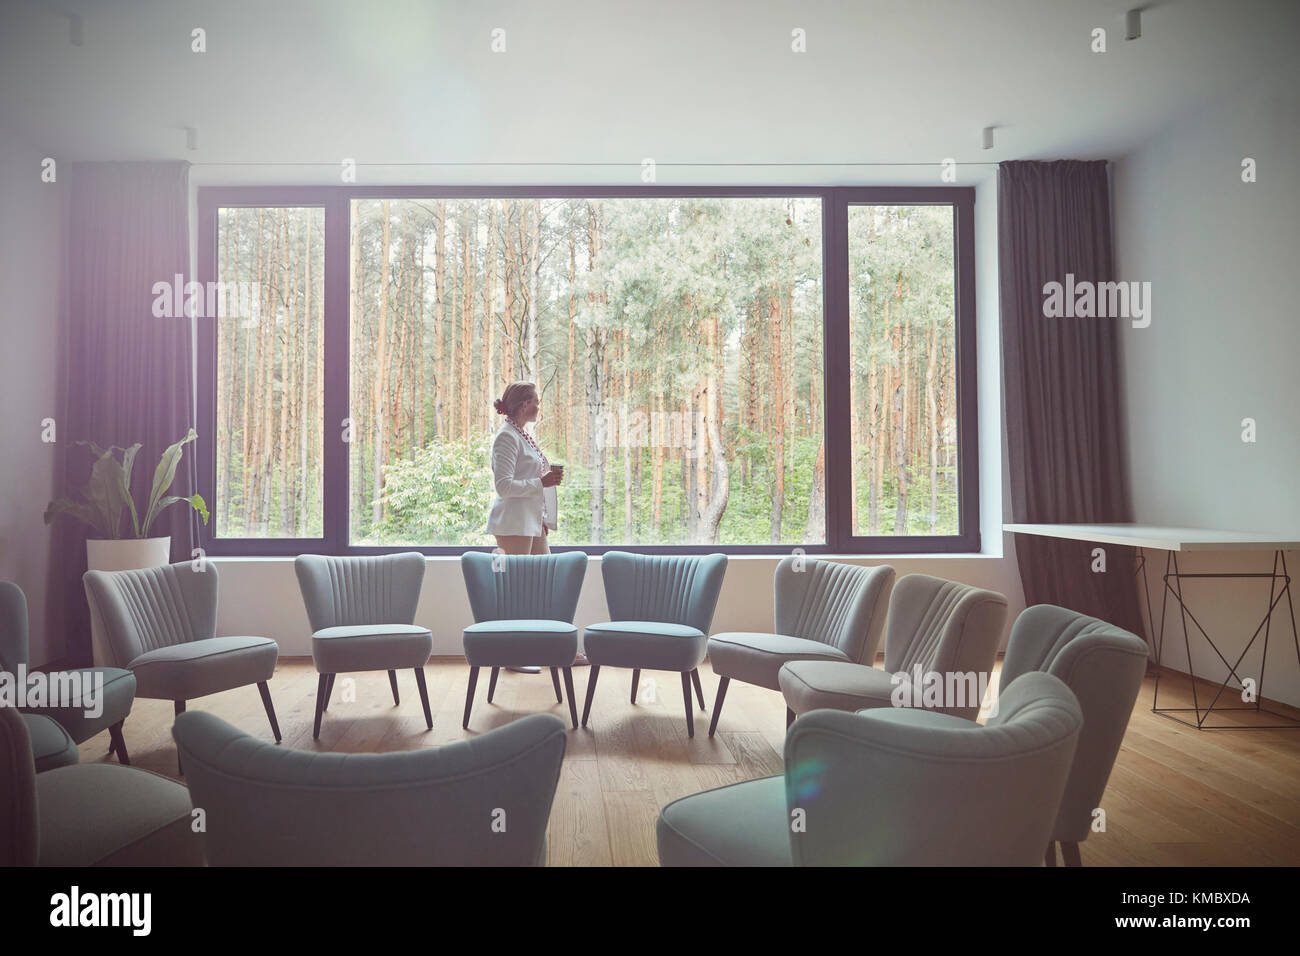 Pensive woman looking out windows at tress in group therapy room - Stock Image